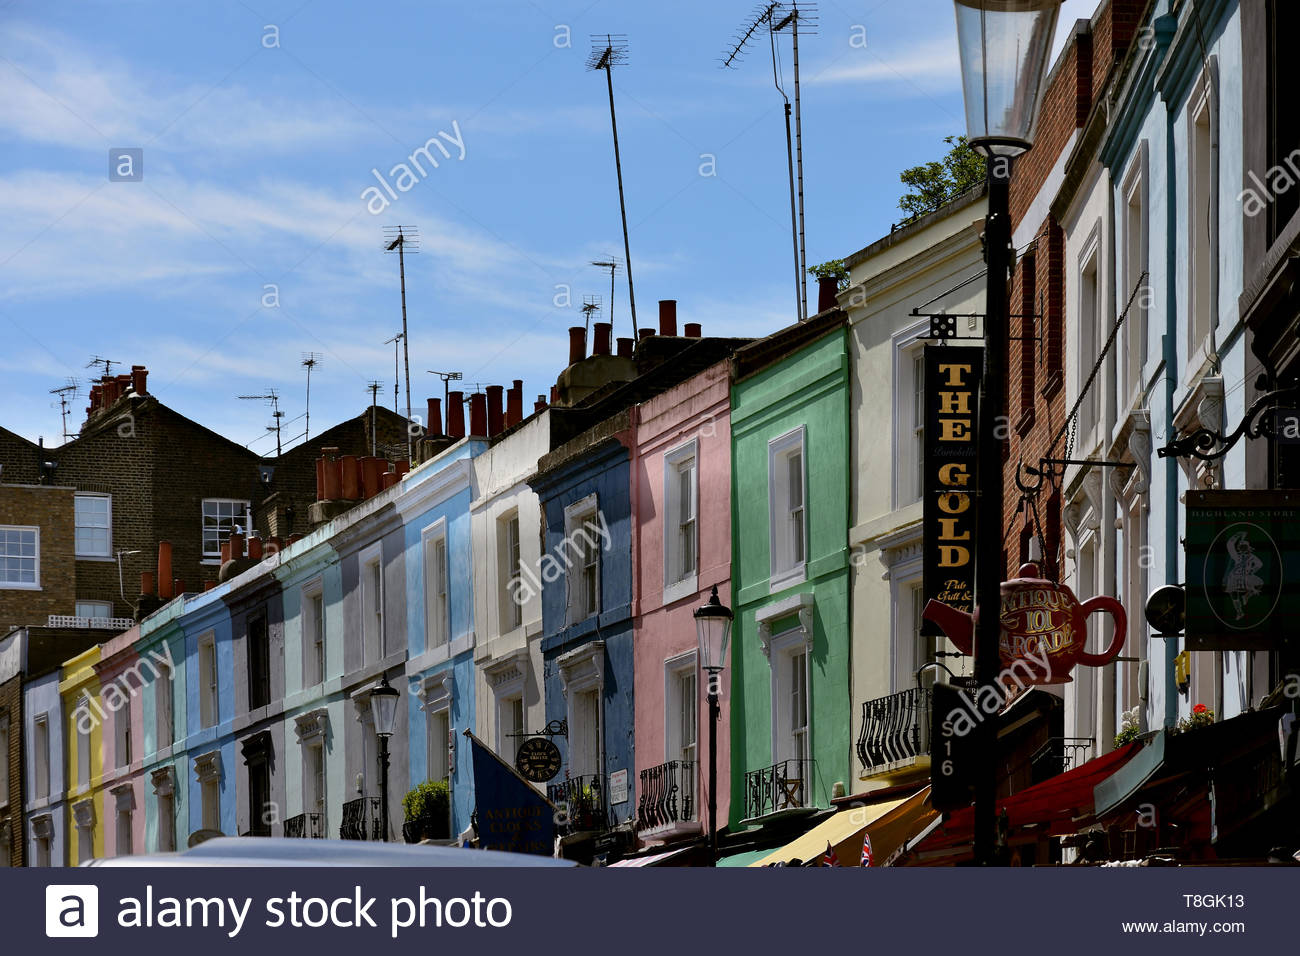 'Notting Hill' Famous London district with its characteristic shops and its colorful houses - Stock Image